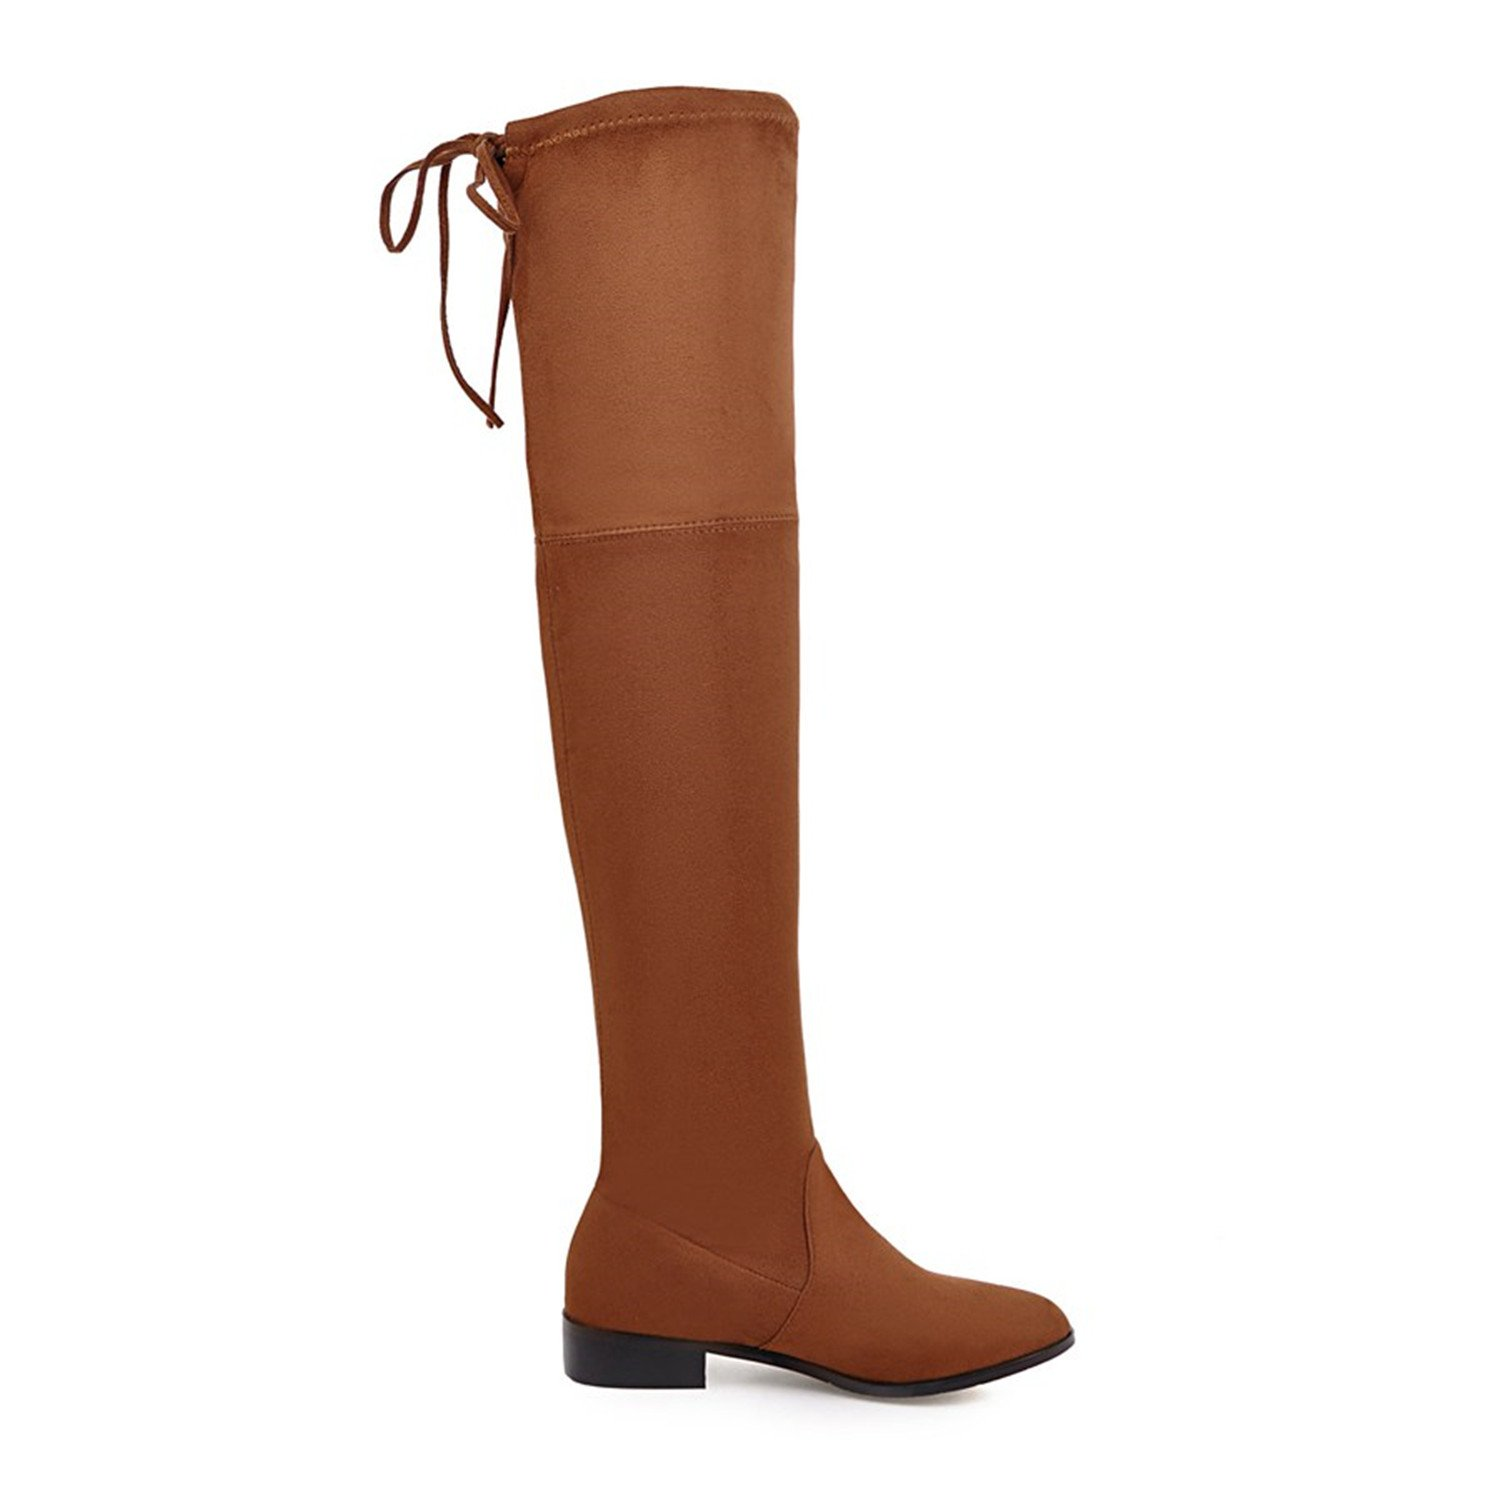 Dormery Ladies Shoes Square Low Heel Women Pointed Over The Knee Boots Scrub Black Pointed Women Toe Woman Motorcycle Boots Size 34-43 B078QX9BB7 Moto c8107e